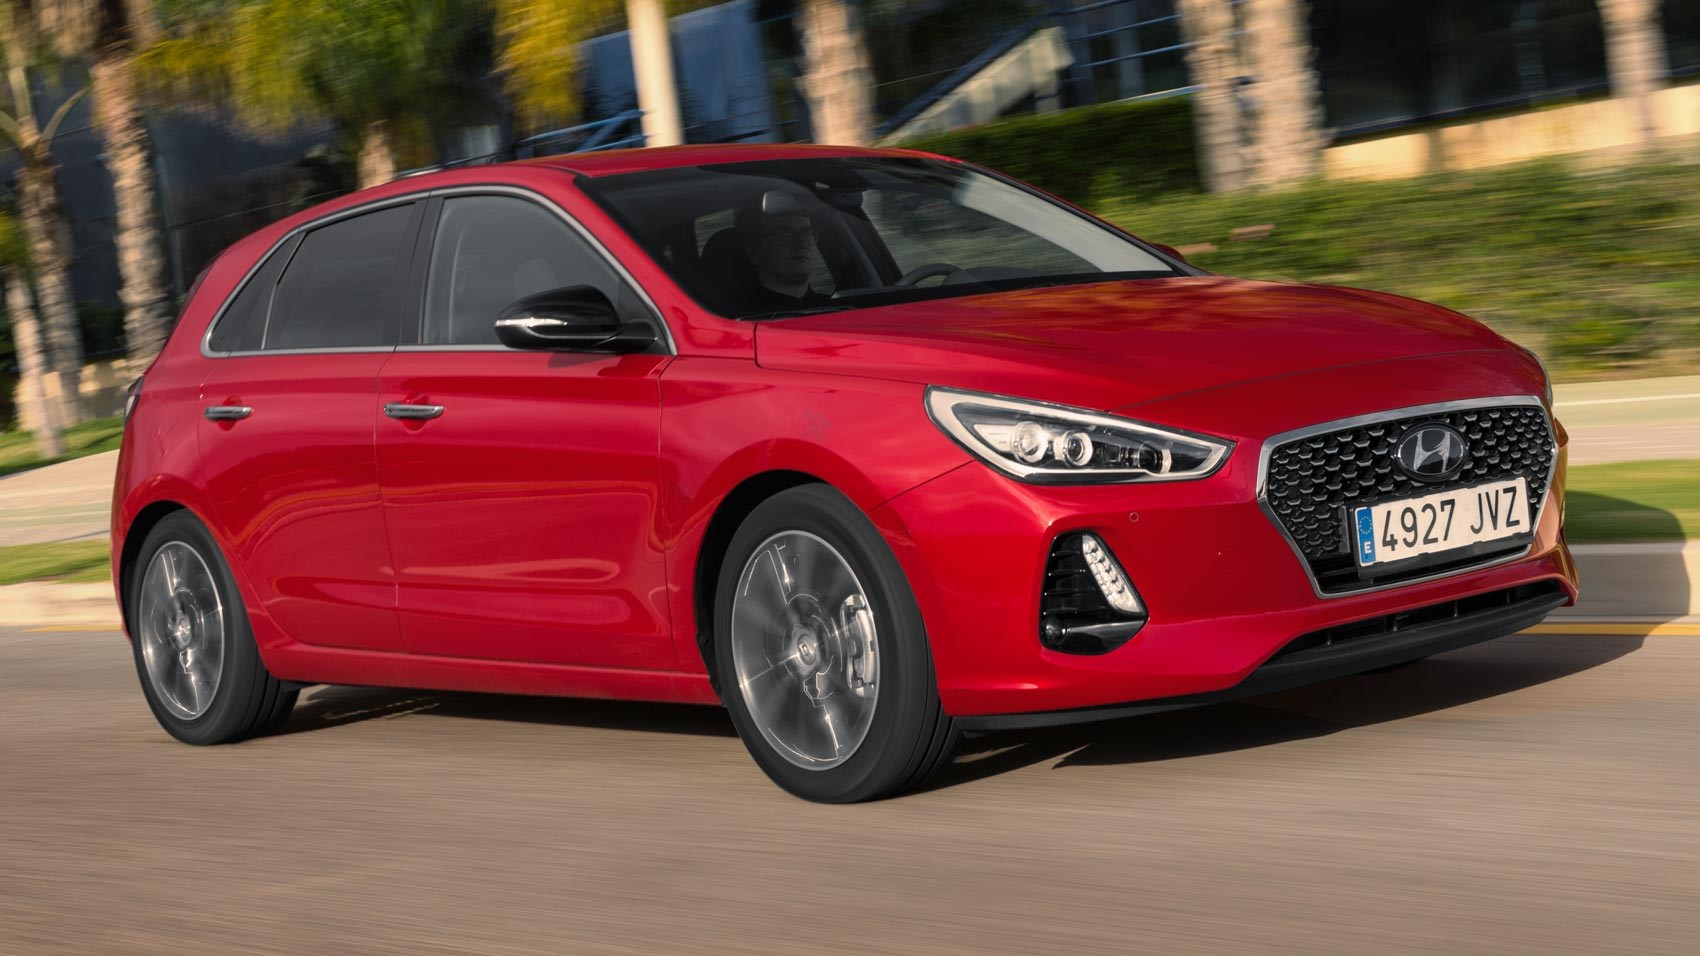 hyundai i30 1 4 t gdi 140ps premium 2017 review by car magazine. Black Bedroom Furniture Sets. Home Design Ideas